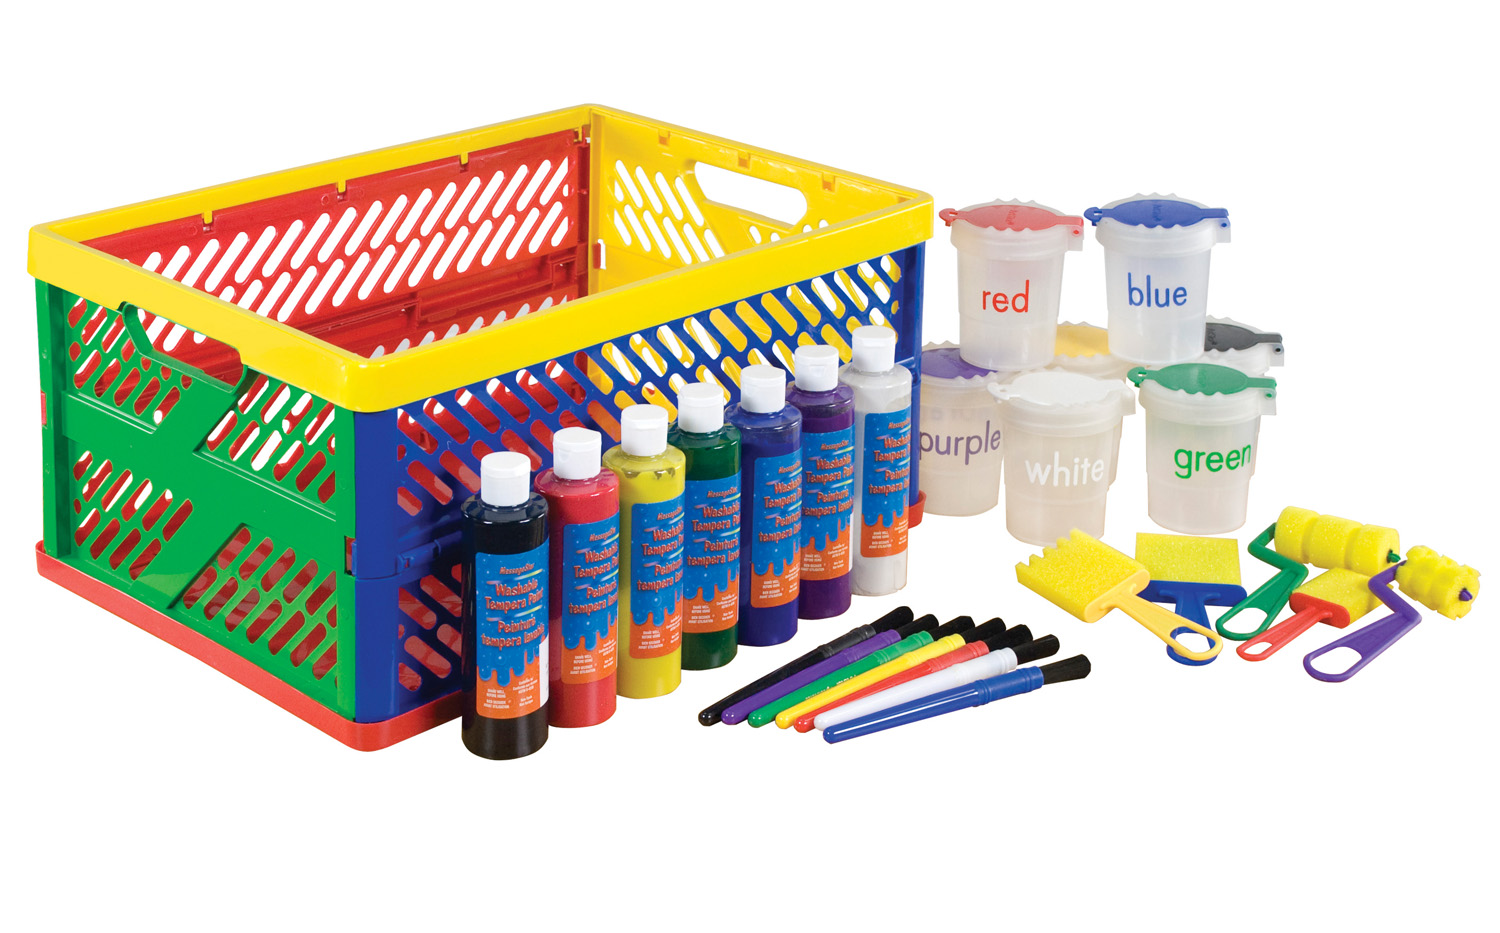 Offex Toddlers Large Paint Crate Set with Collapsible Colors - 27 Piece